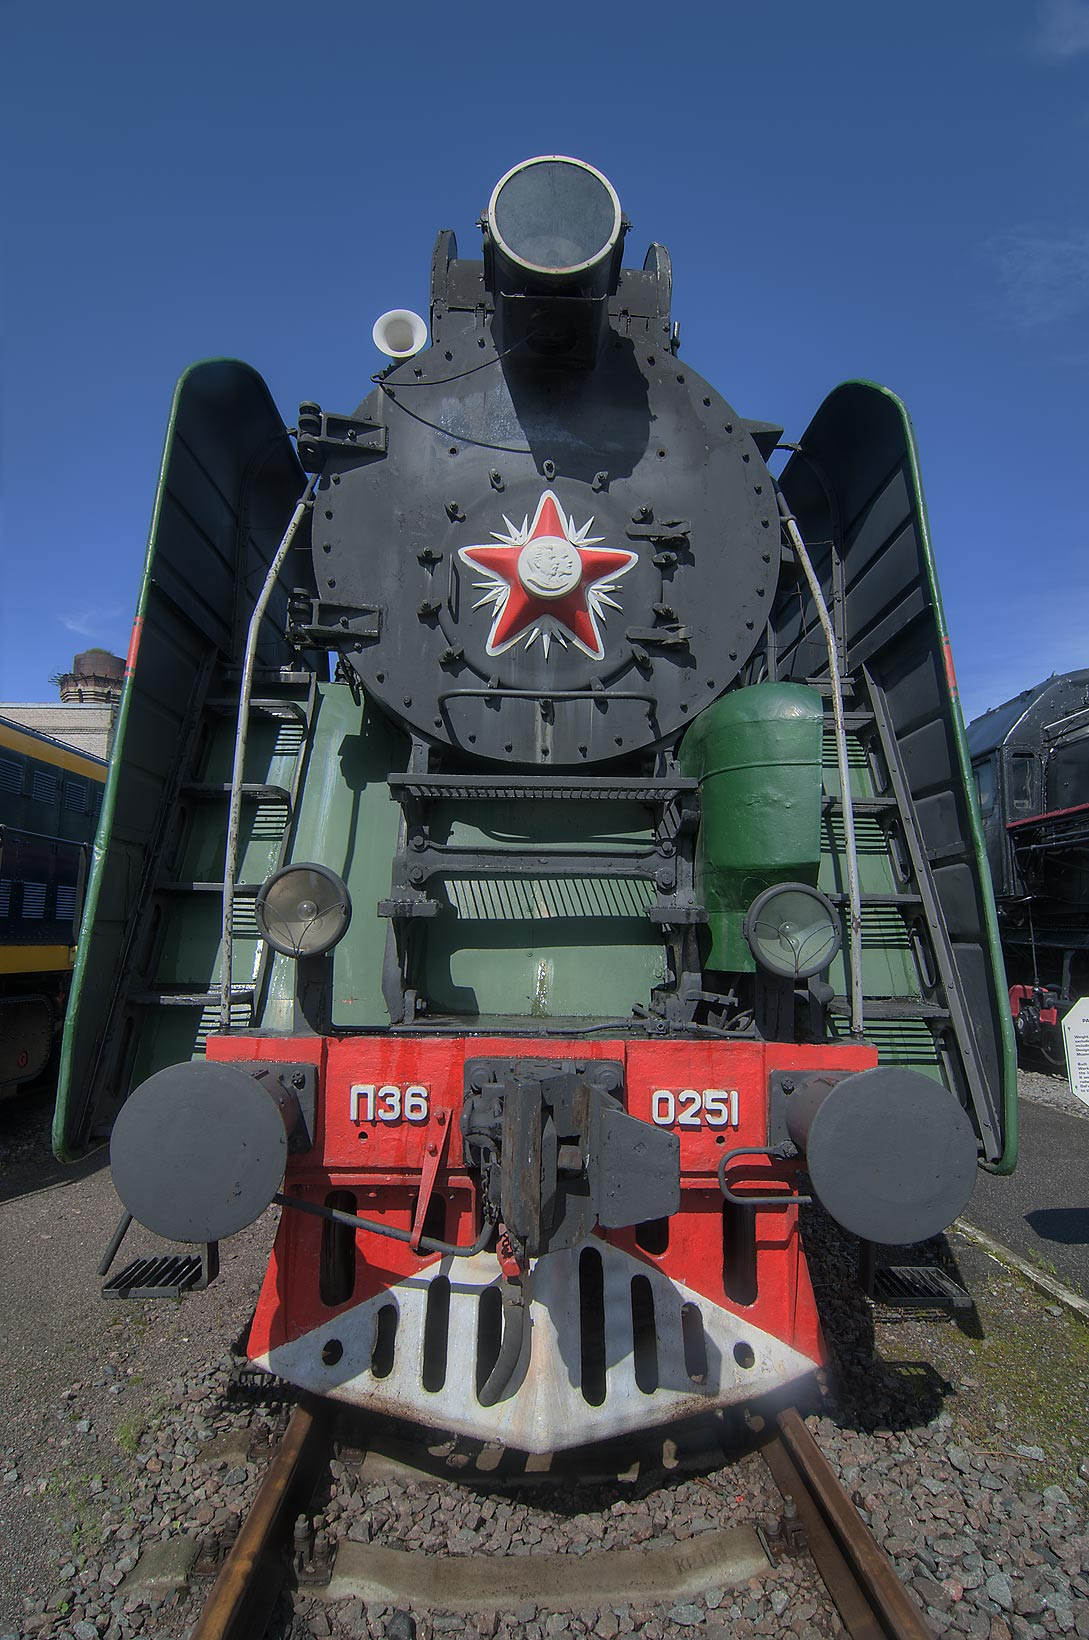 Steam engine train in a railroad museum on Varshavsky Train Station. St.Petersburg, Russia